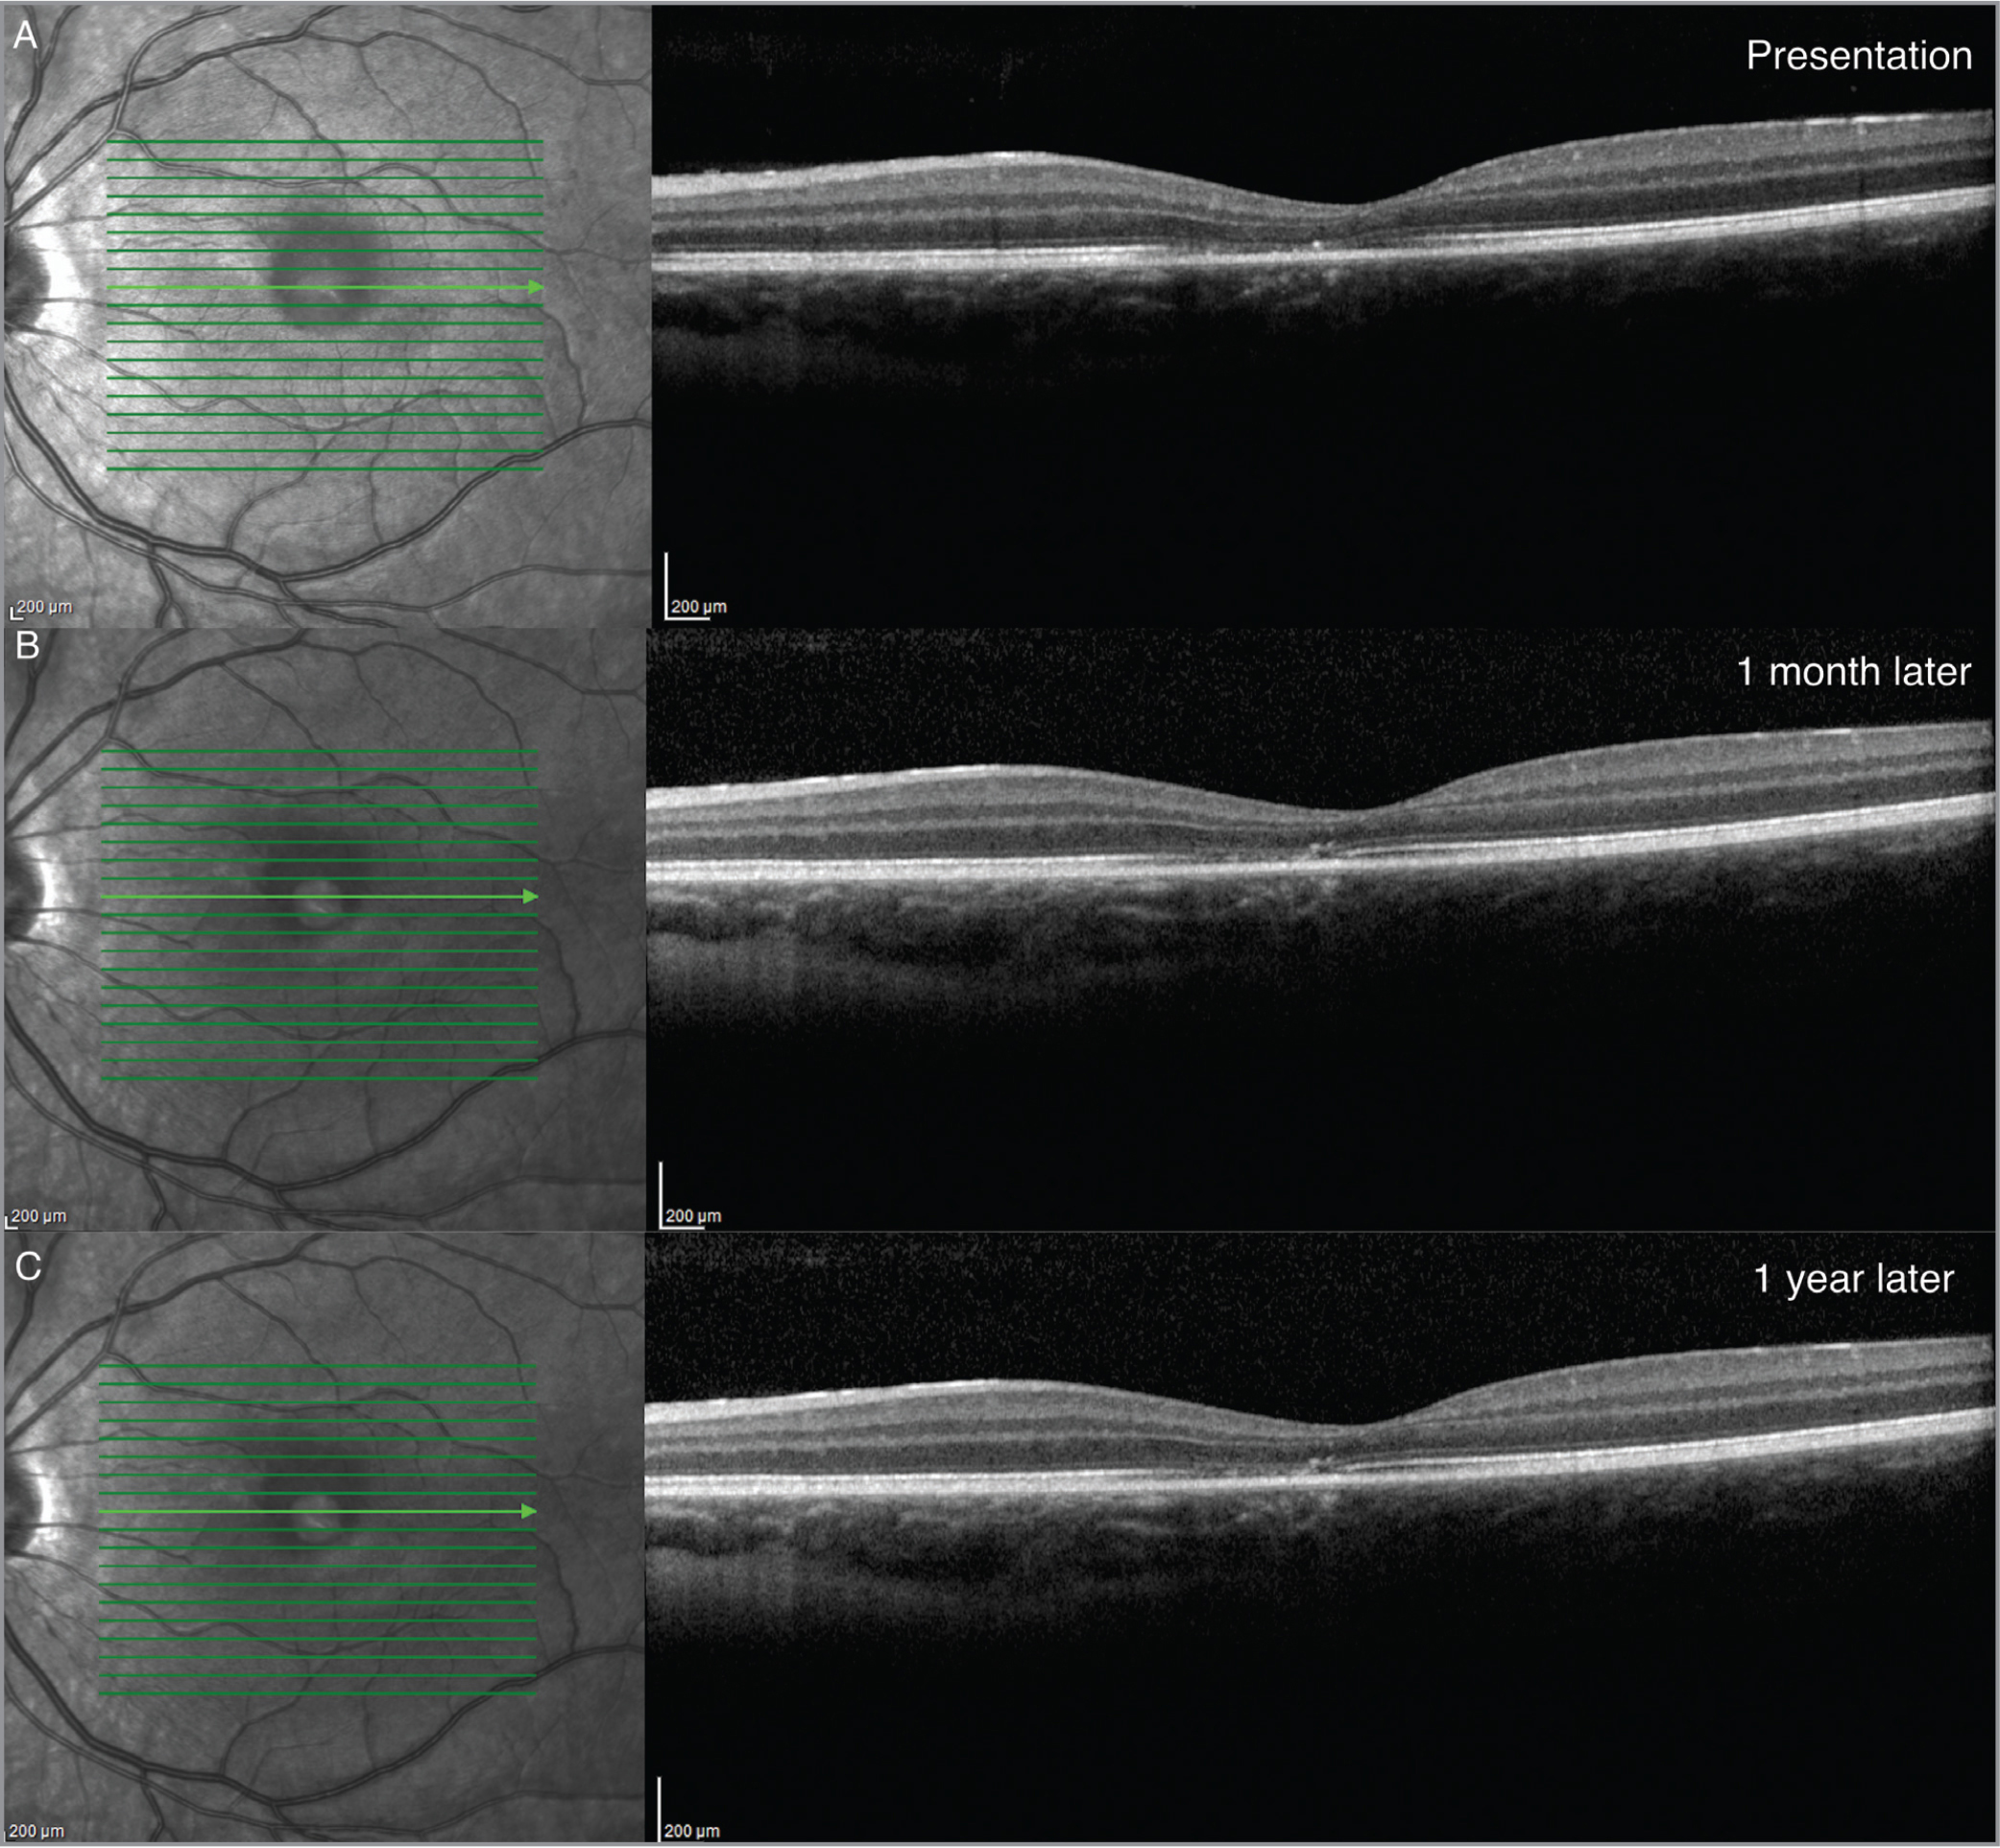 Case 2: Spectral-domain optical coherence tomography at (A) presentation showing loss of reflection in cone outer segment tips and inner segment/outer segment junction (B) 1 month after injury and (C) 1 year later showing partial photoreceptor recovery with minimal persistent outer retinal defects.